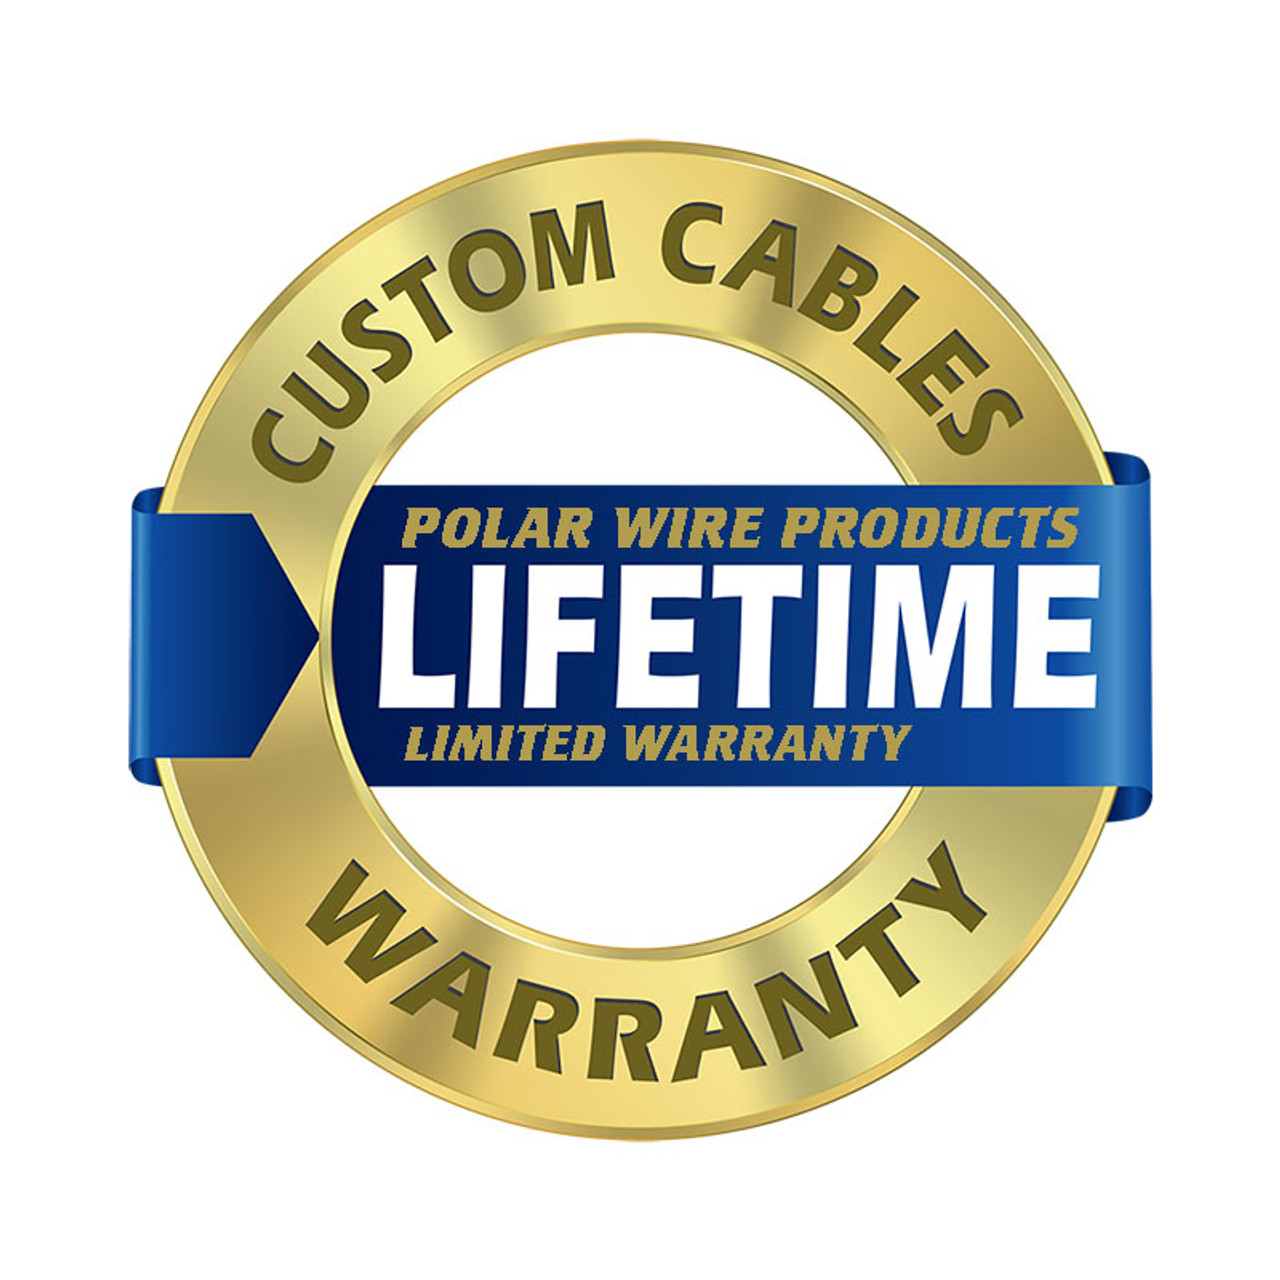 Polar Wire's custom cables are covered by a lifetime limited warranty on manufacturing and materials